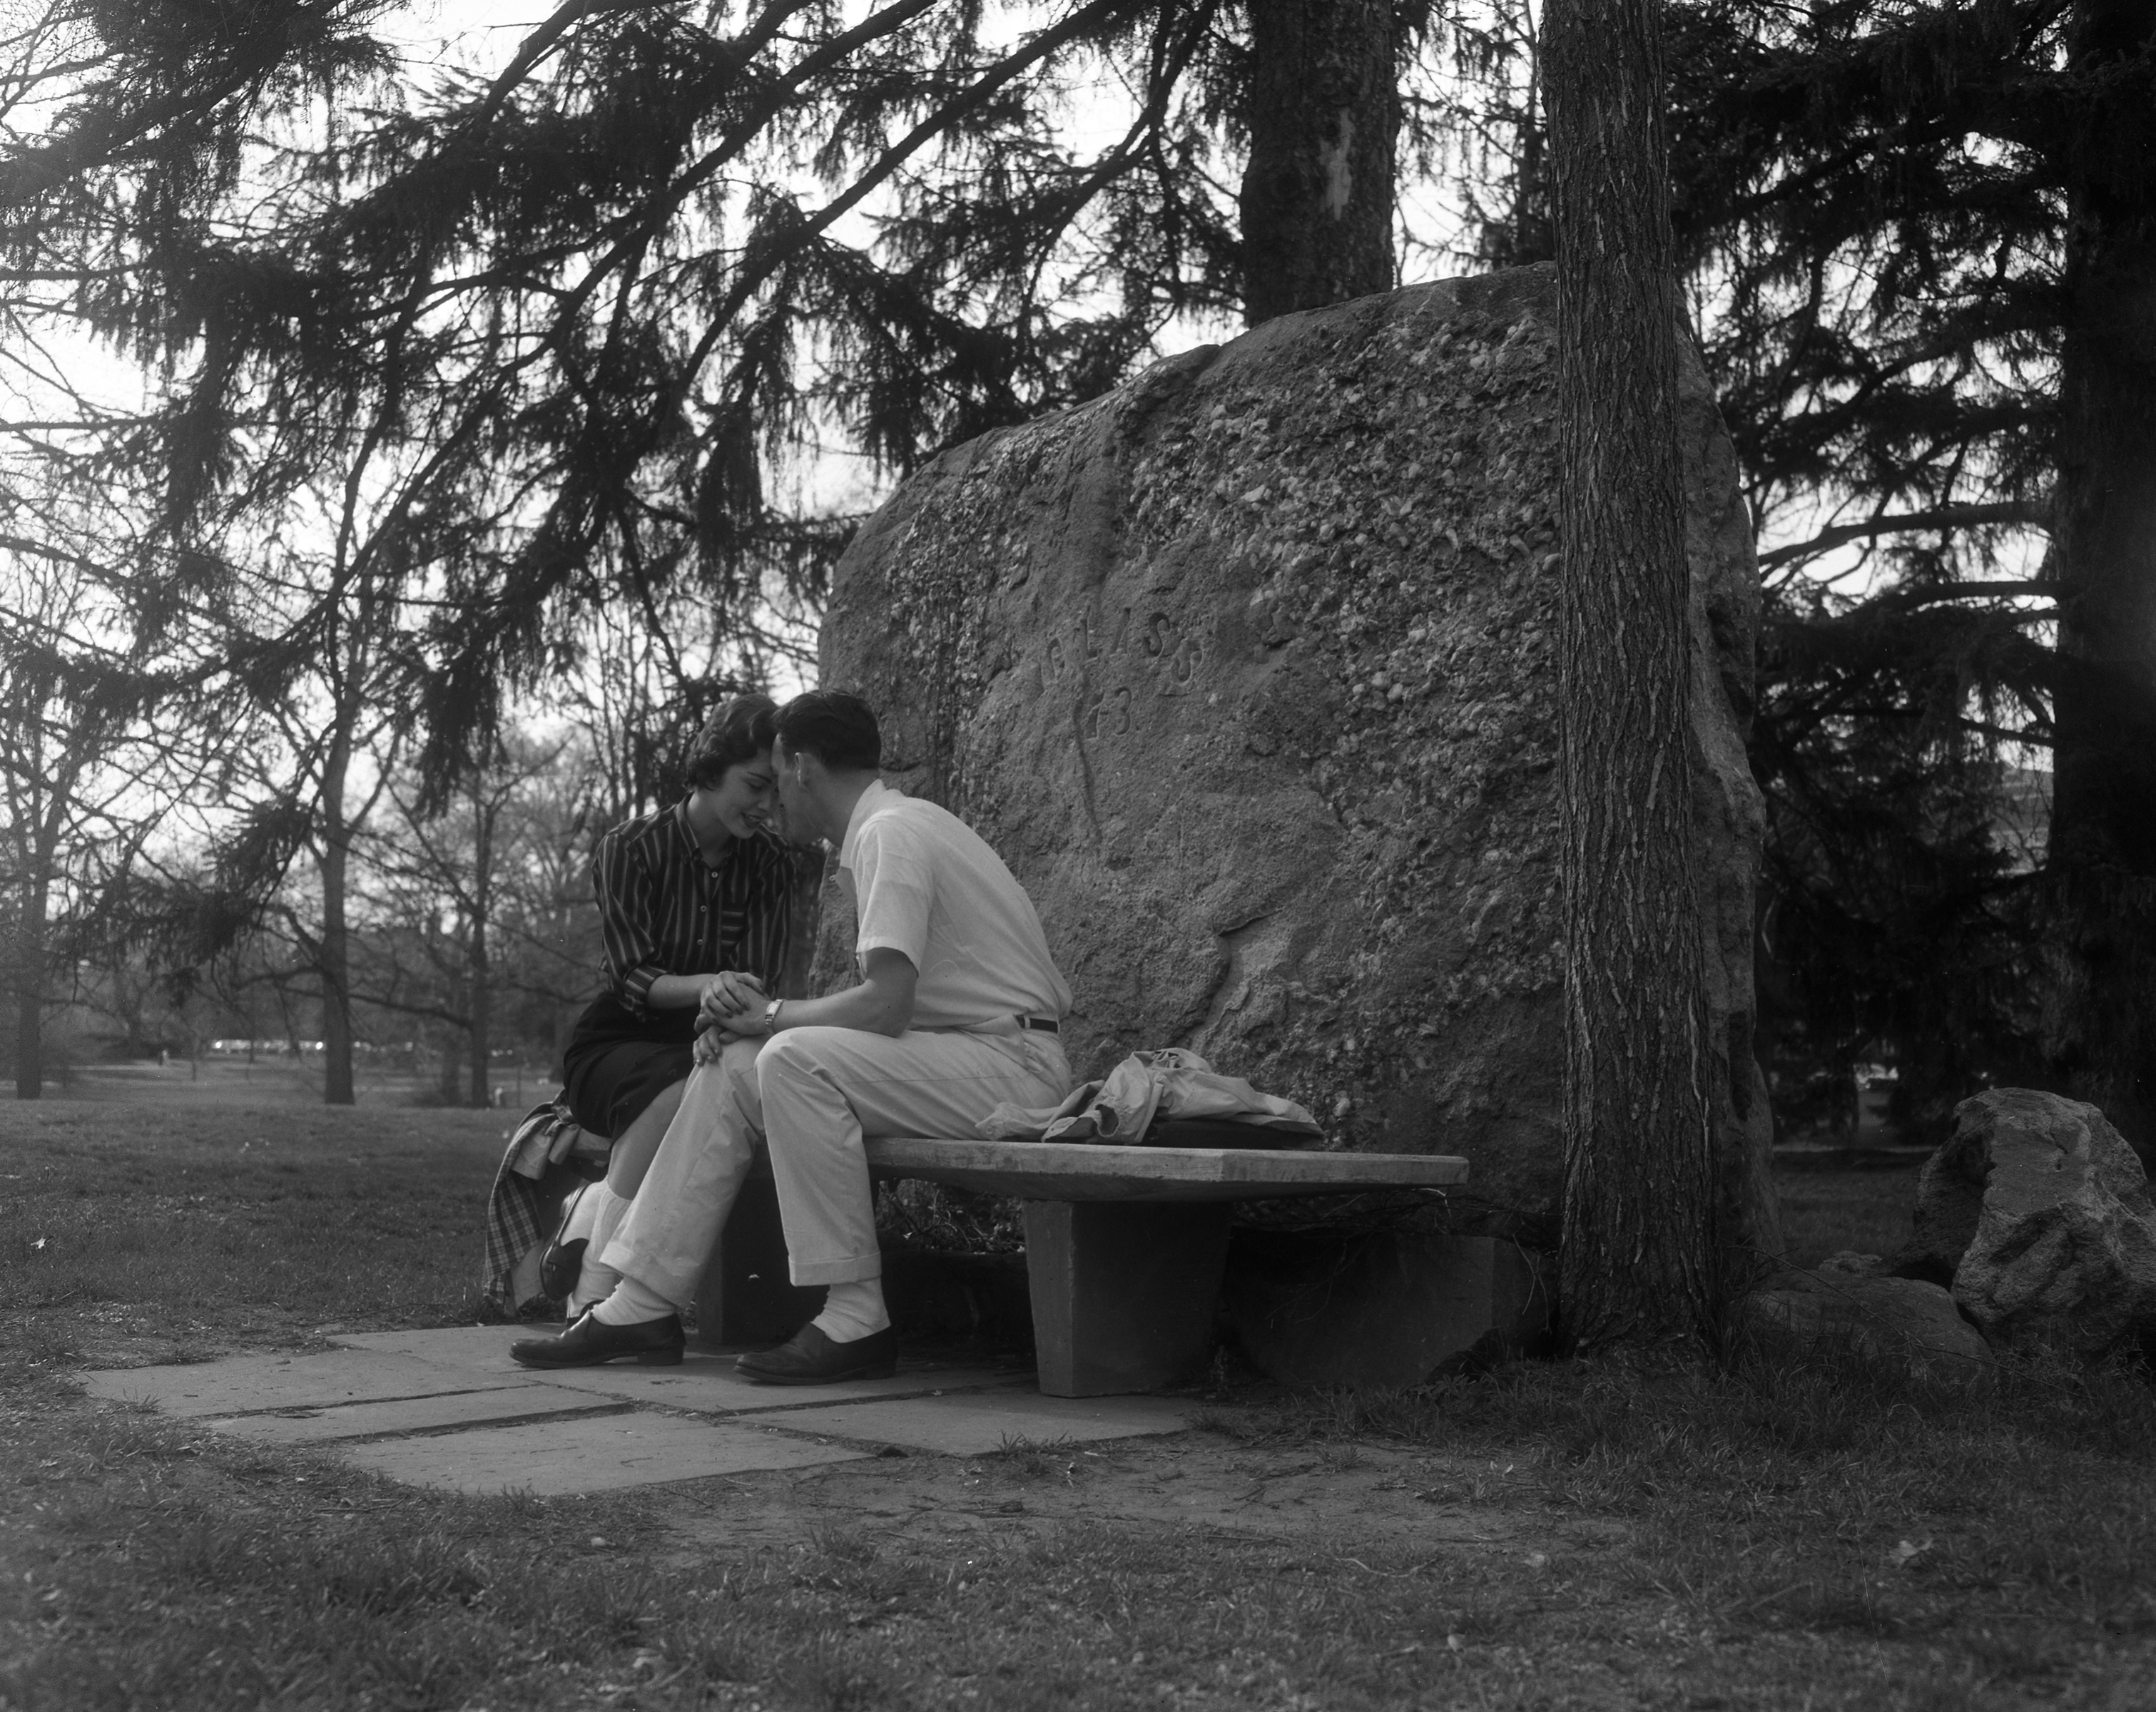 Engagement Rock, April 21, 1958